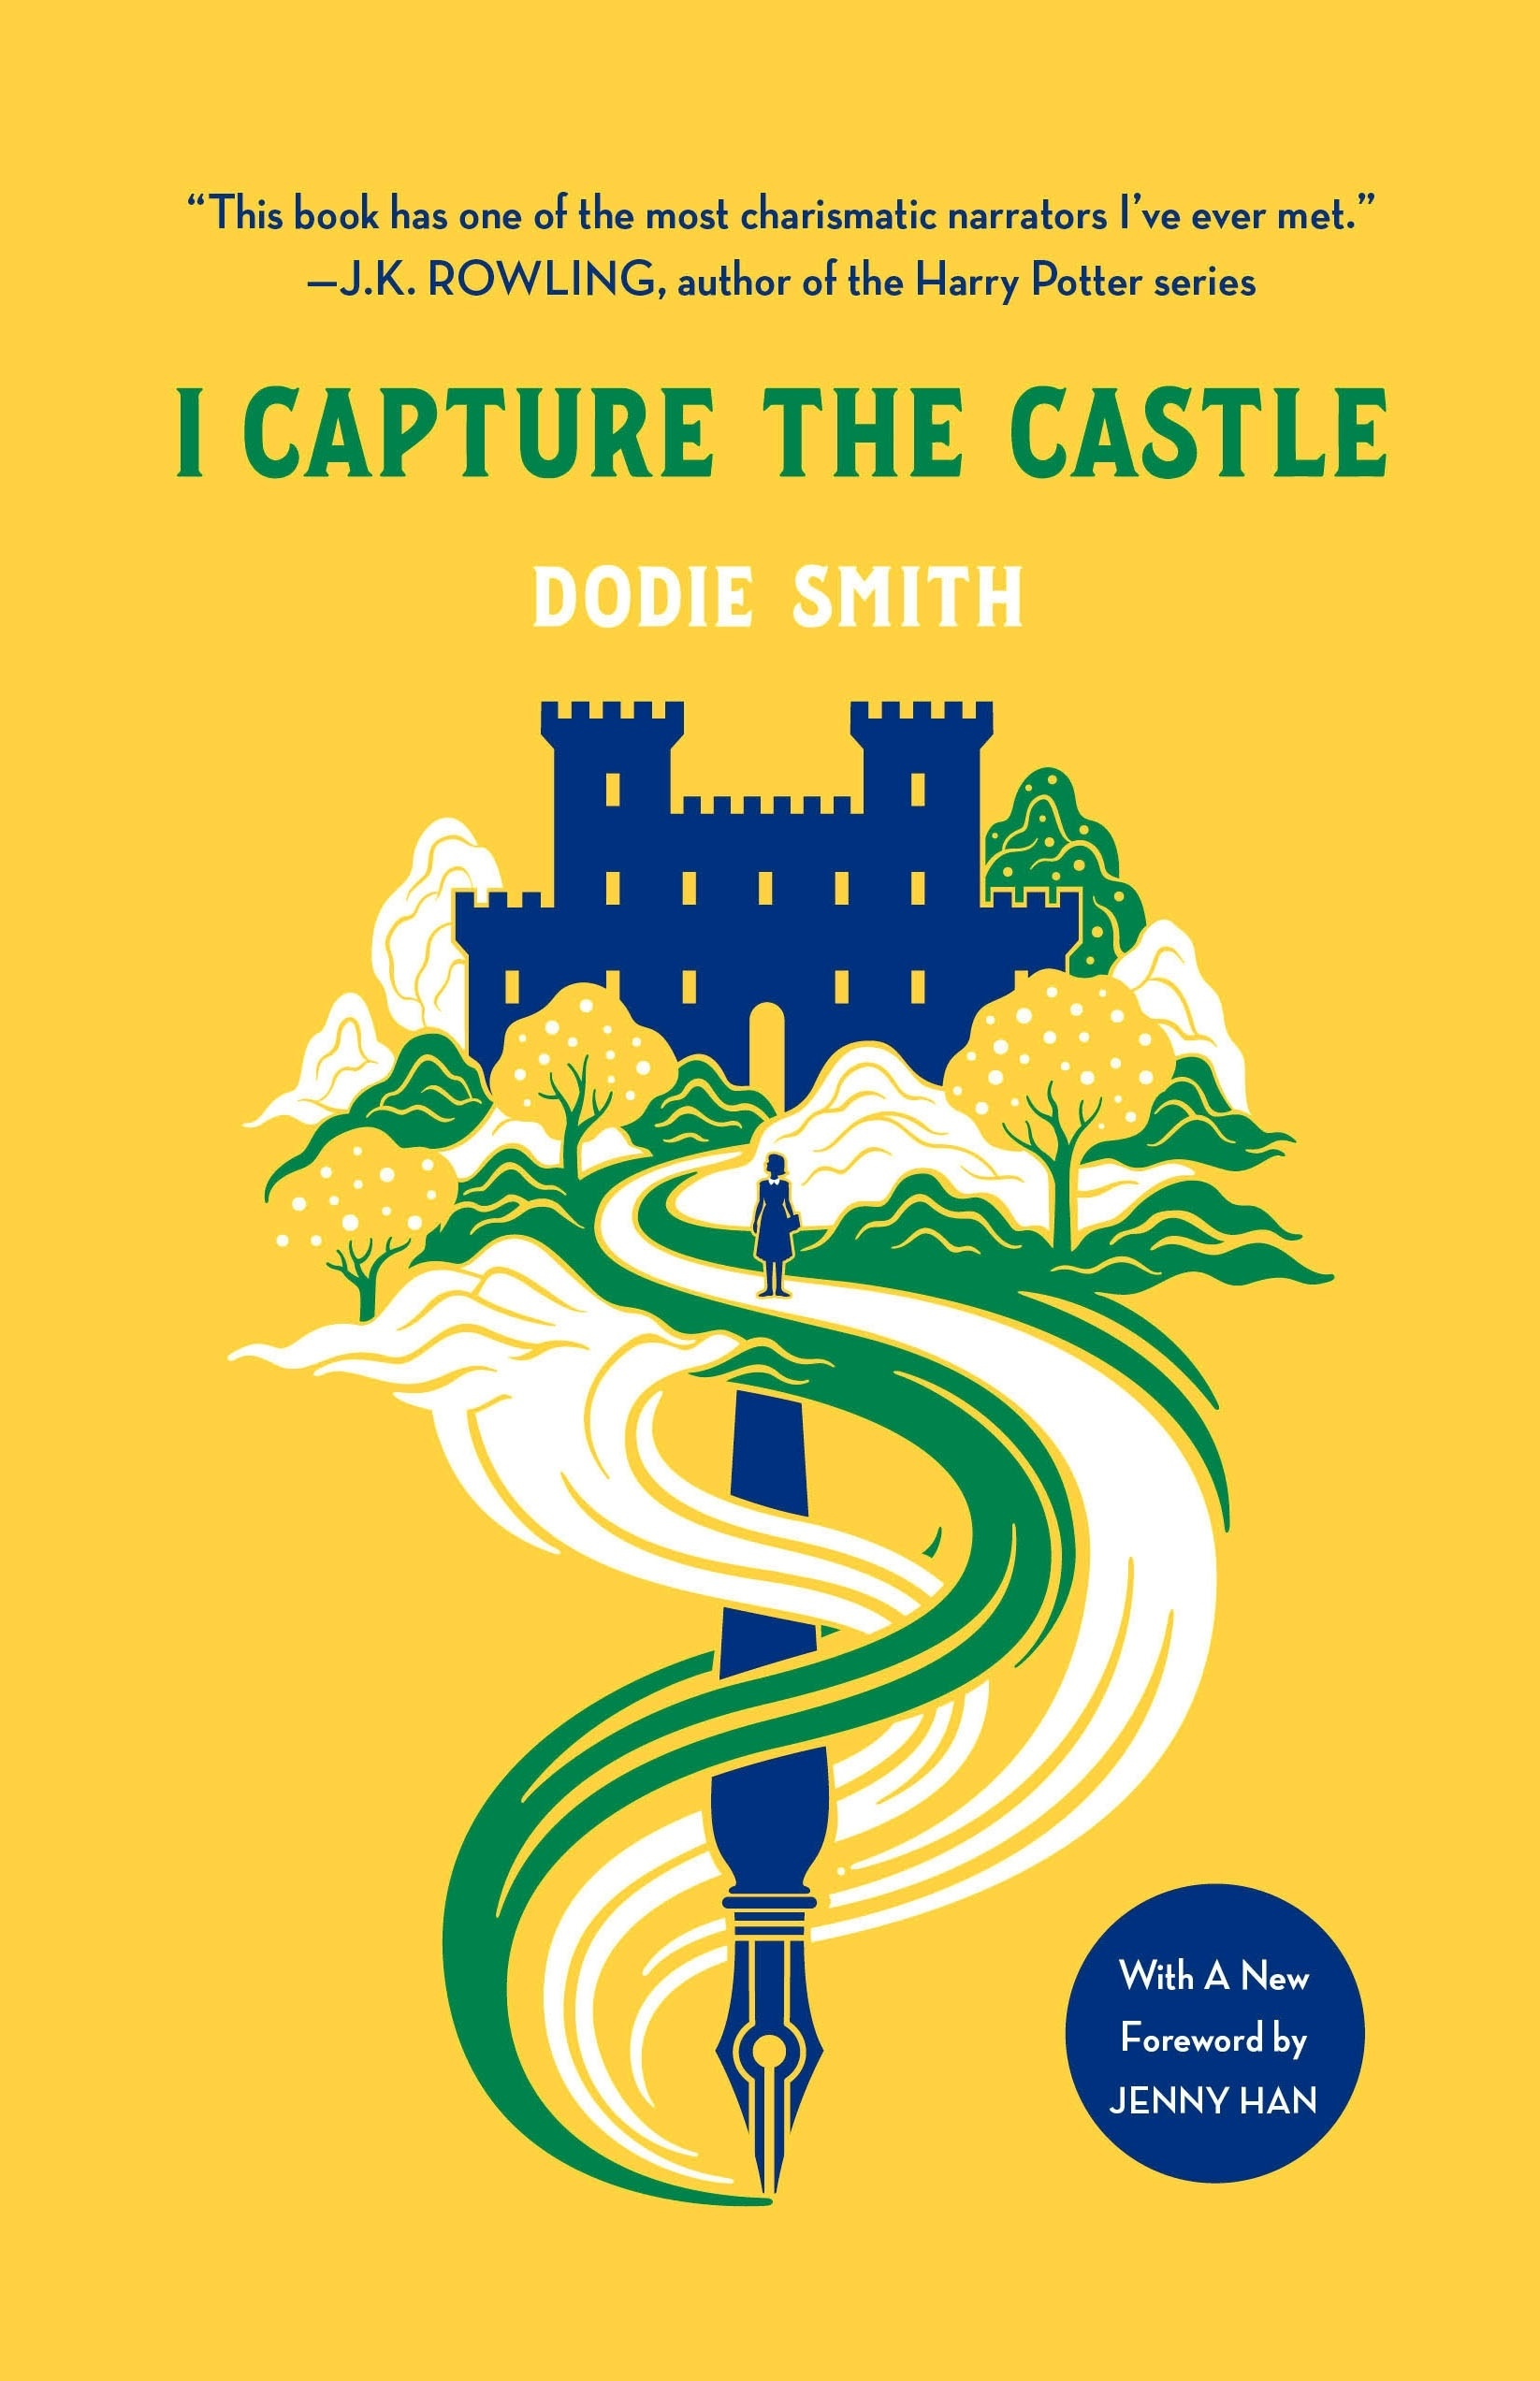 Why I Capture the Castle has gained a secret cult of book lovers